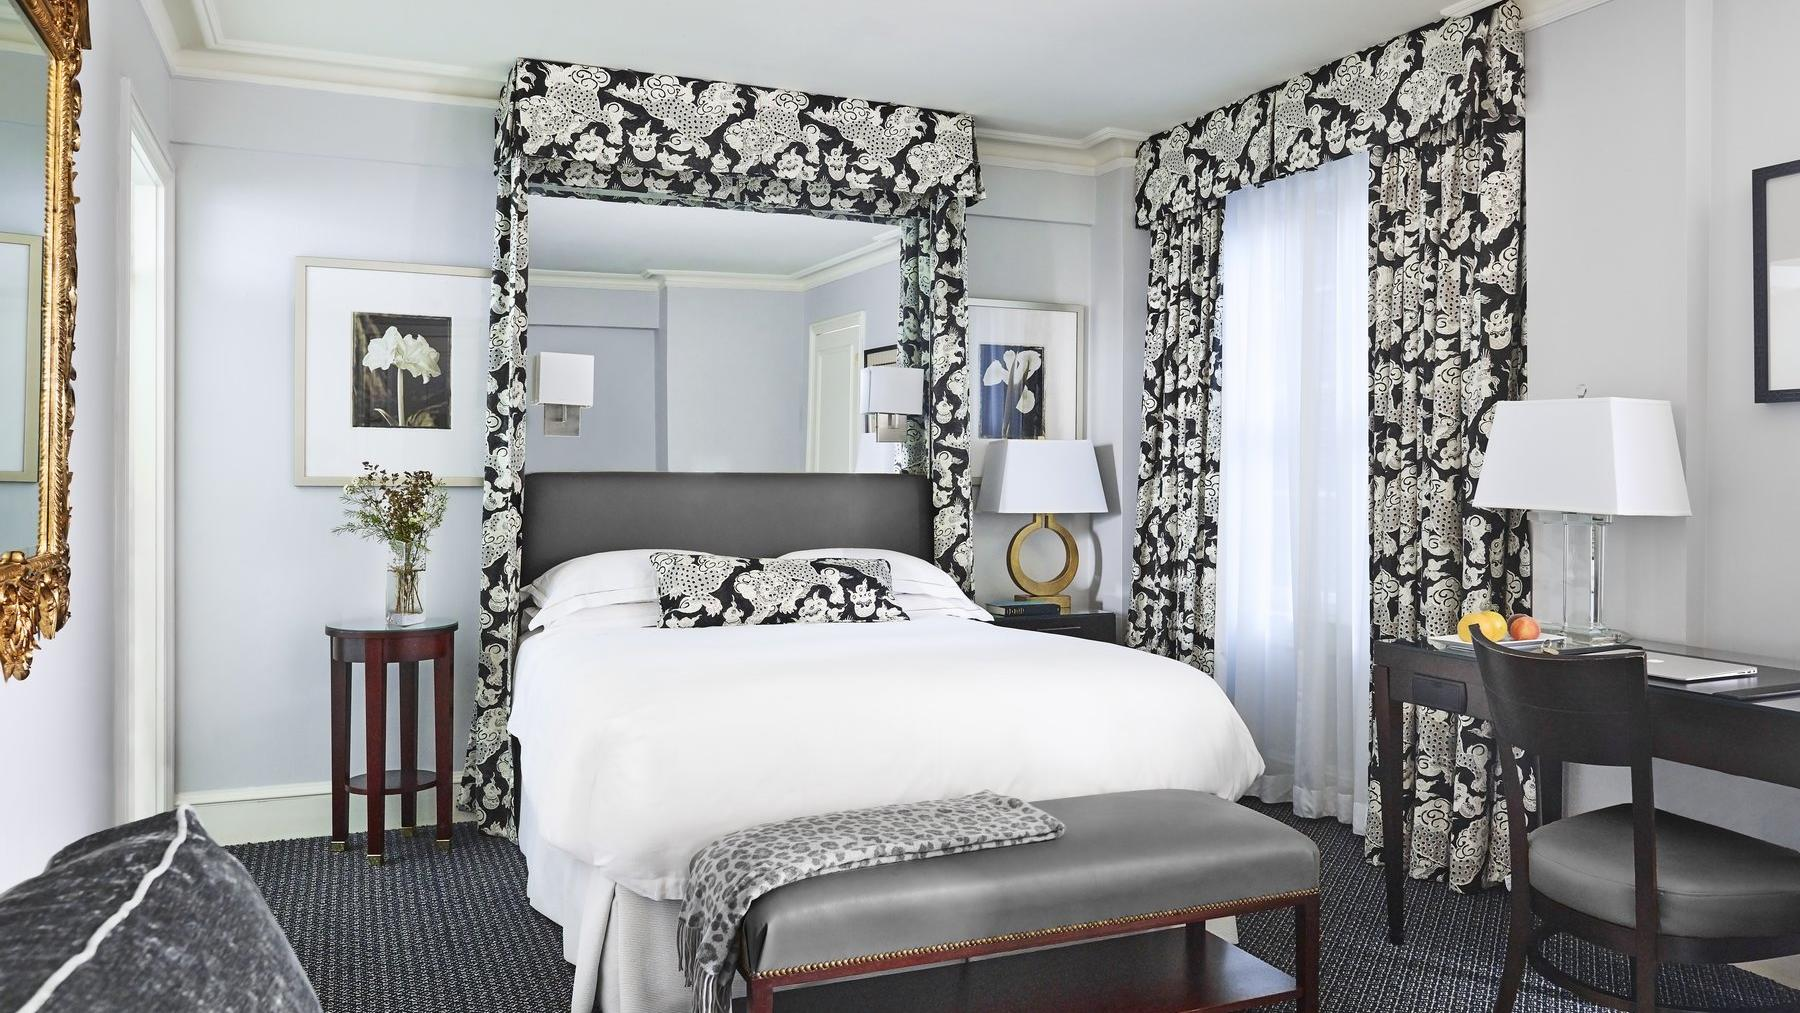 Light grey colored wall room with white queen bed and small desk.